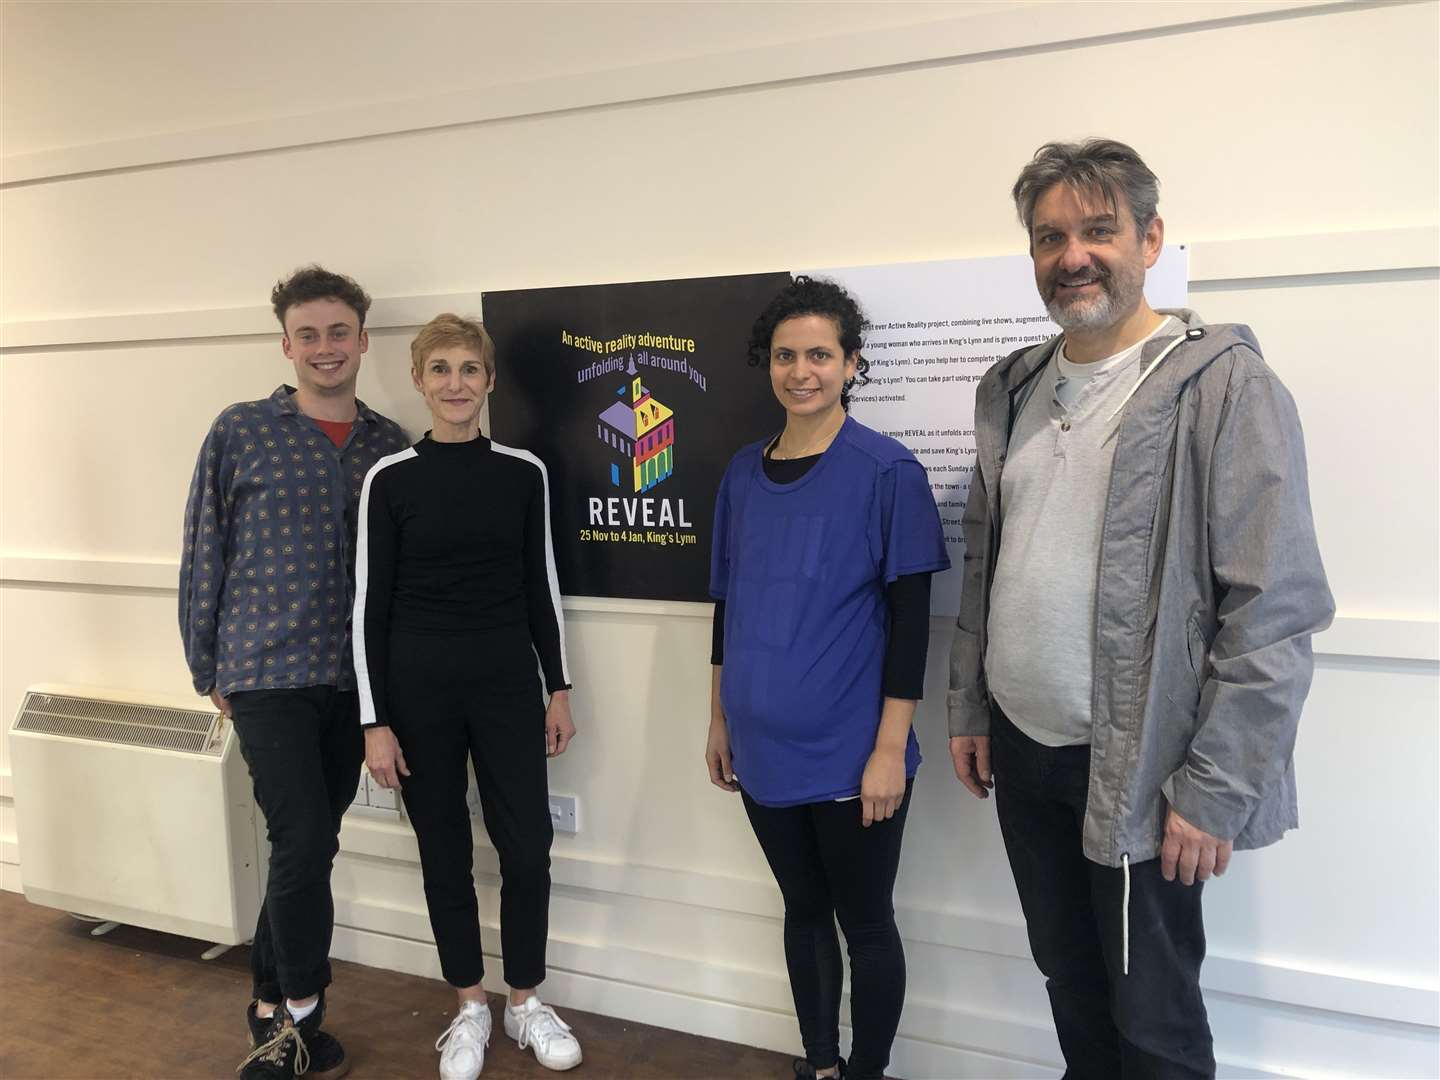 Actors from active reality adventure REVEAL. From left, Olly Westlake who plays Joe, Claire Lacey who plays Margaret of Antioch, Rebecca Banatvala who plays Maya and Tim Welton as Uncle Don. (5586827)